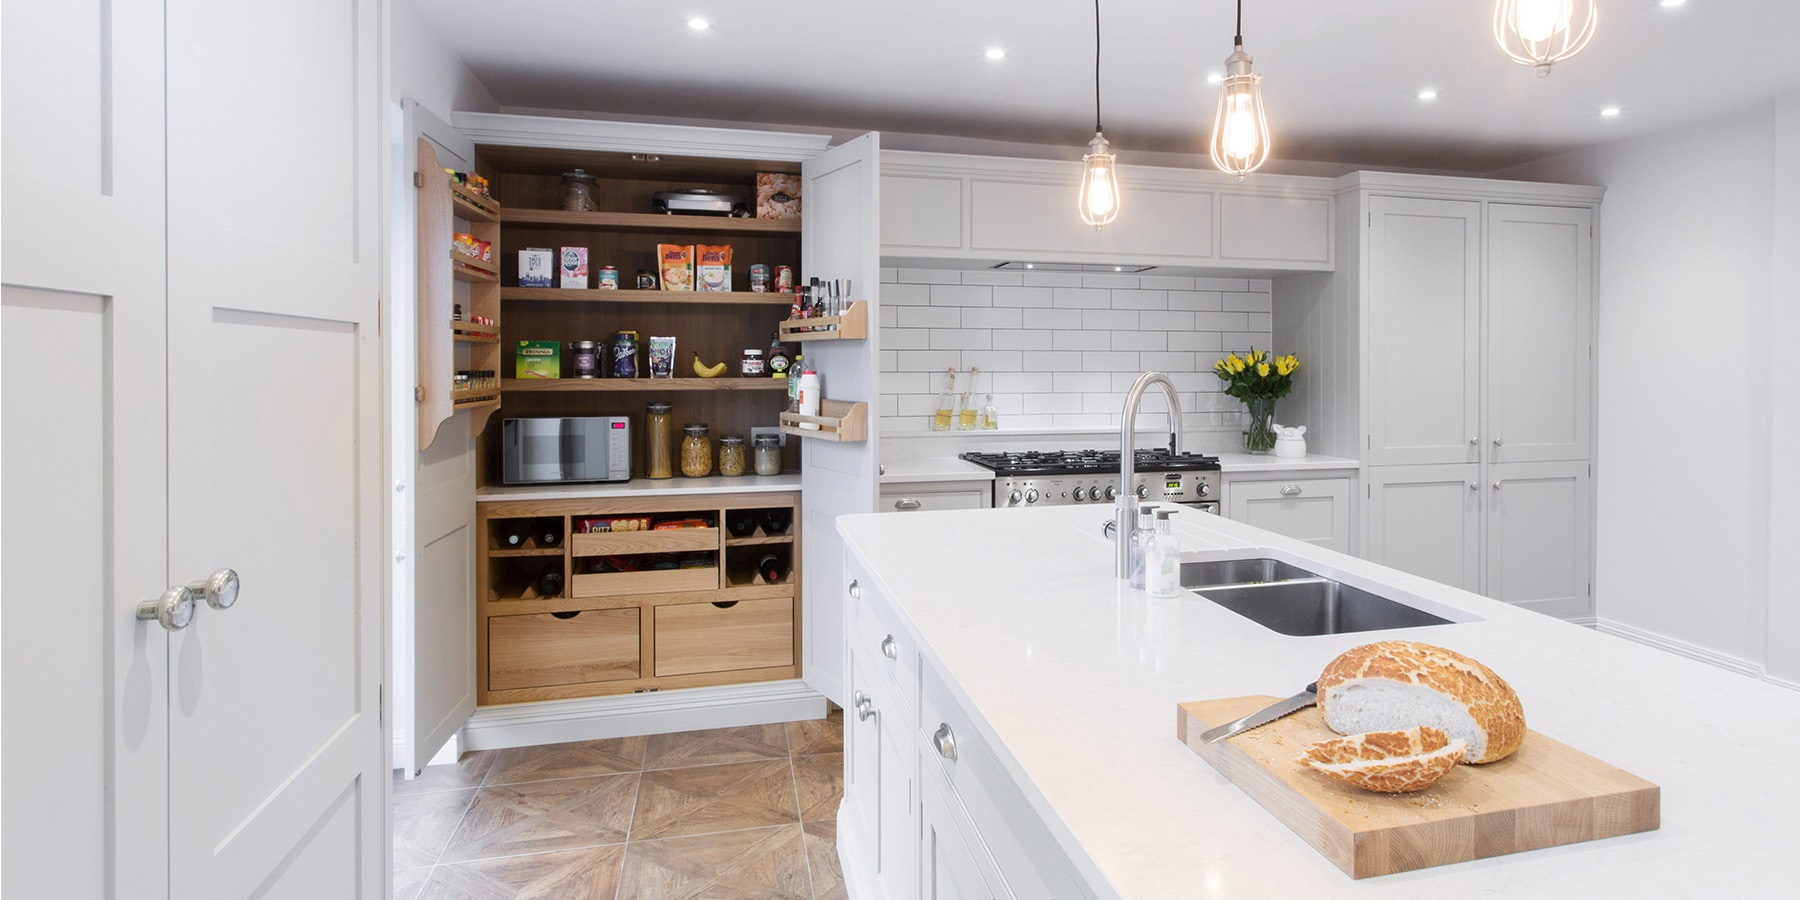 Burlanes Wellsdown Kitchen - Bespoke, handmade grey kitchen with larder unit and white worktops.